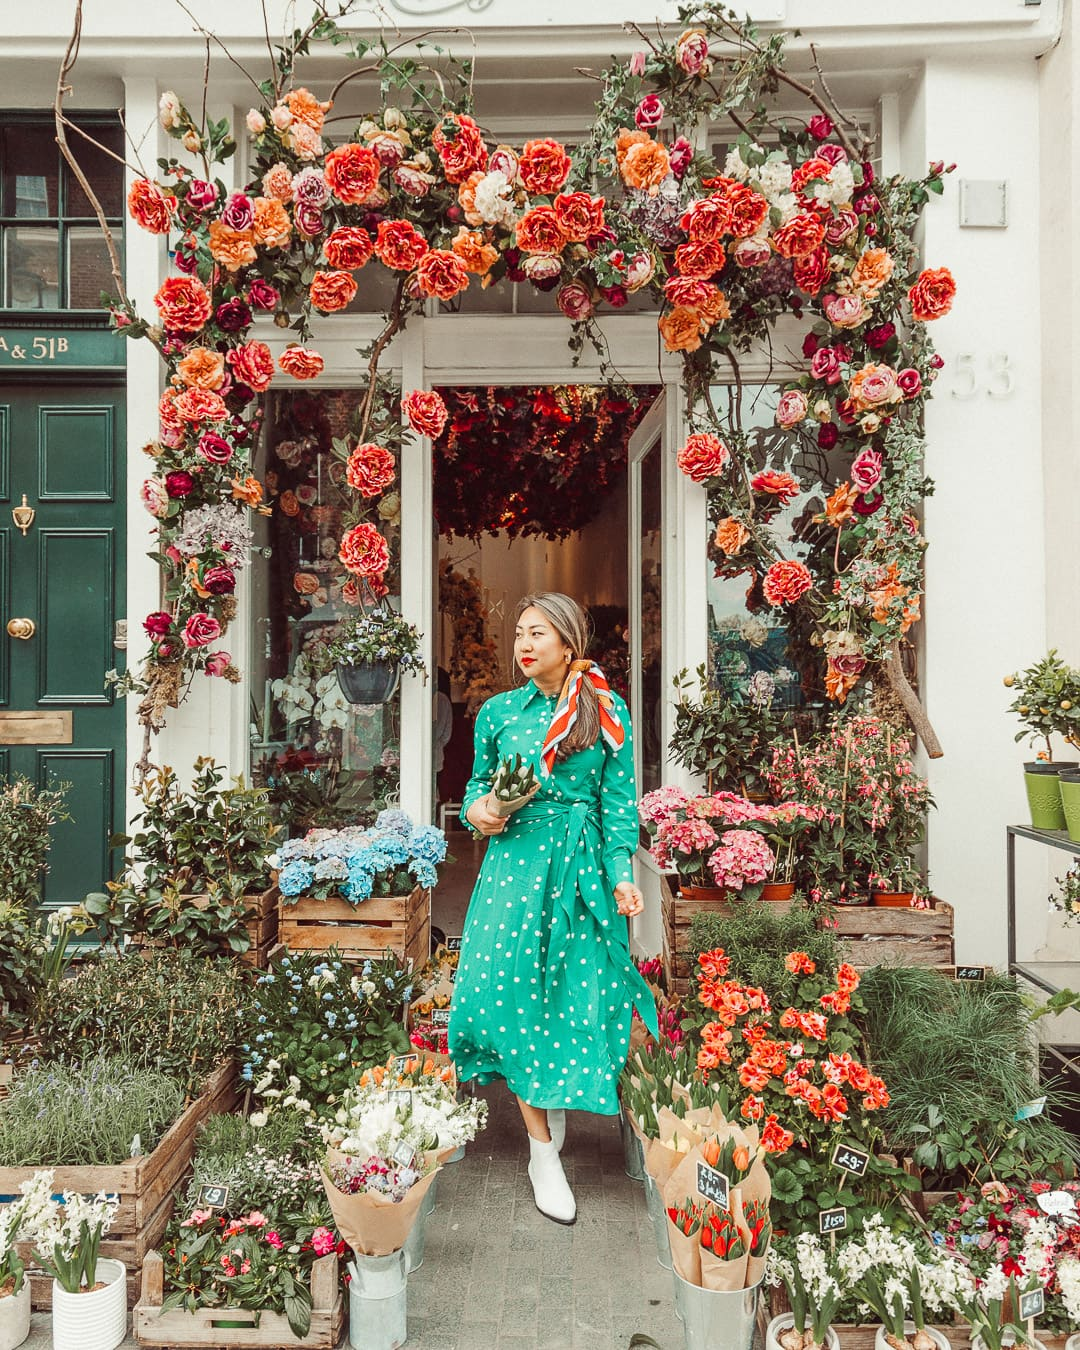 most instagrammable places in london covered in flowers